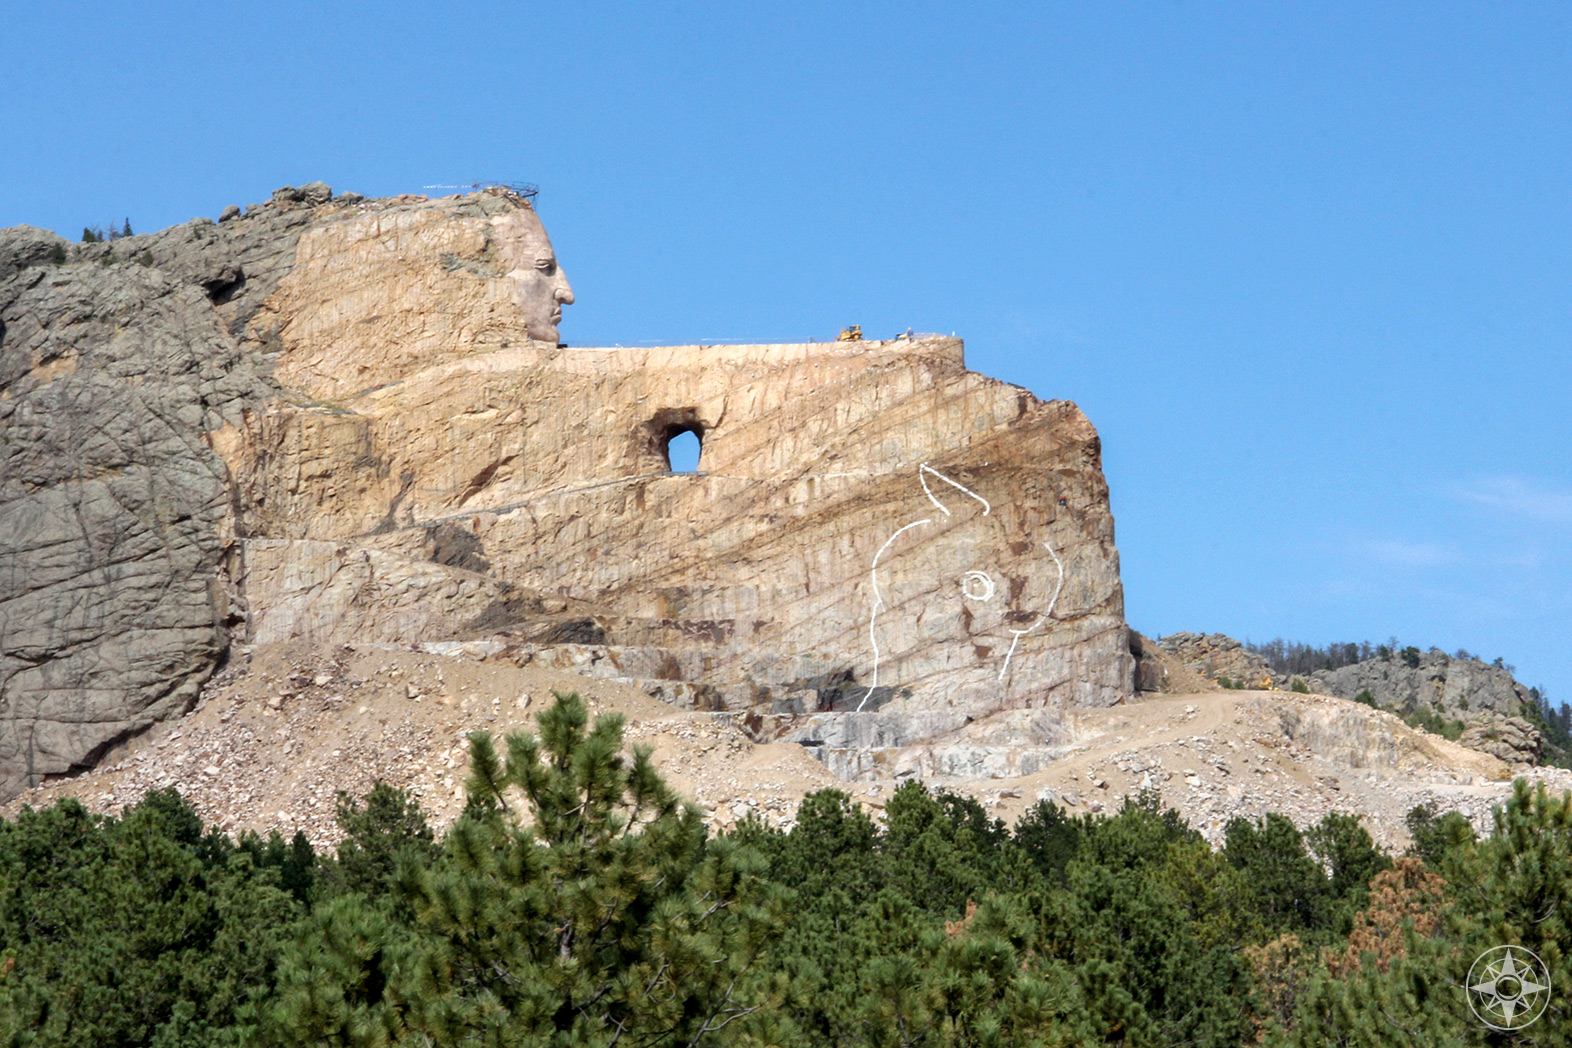 Crazy Horse Memorial, North American Indian and horse sculpture, world's largest mountain monument, Black Hills, South Dakota